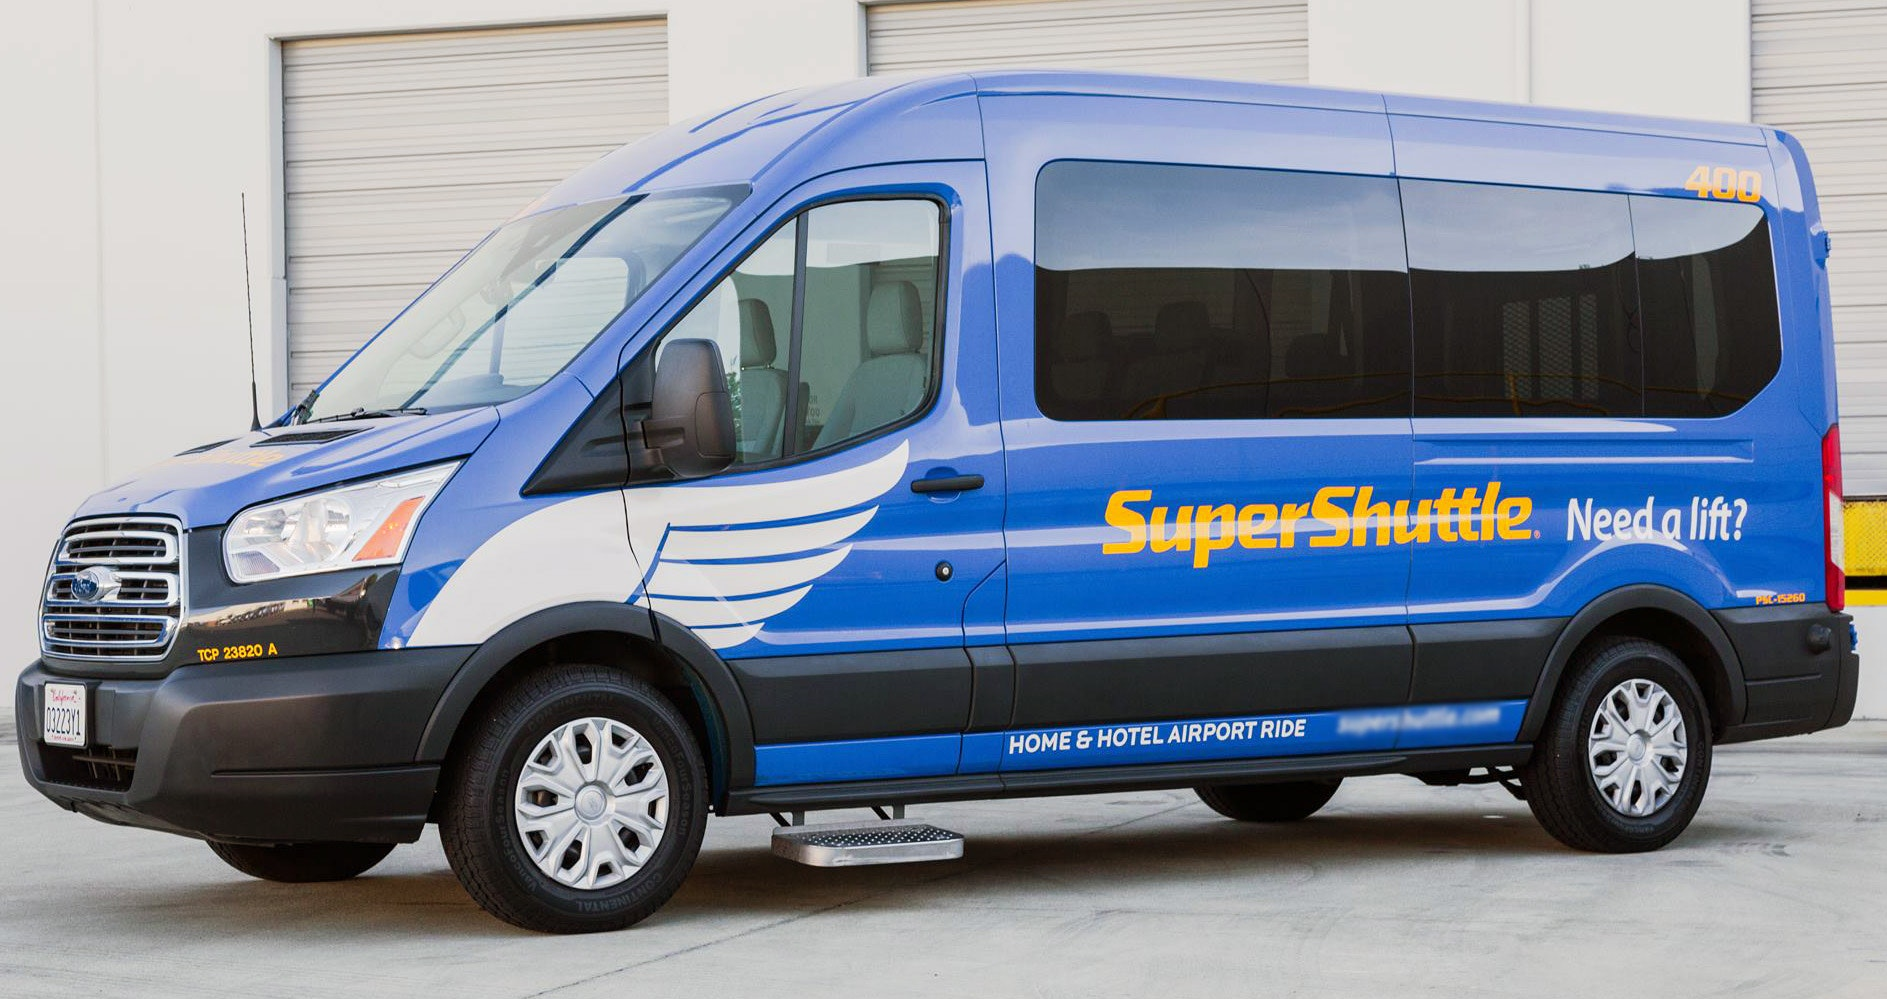 SuperShuttle service photo